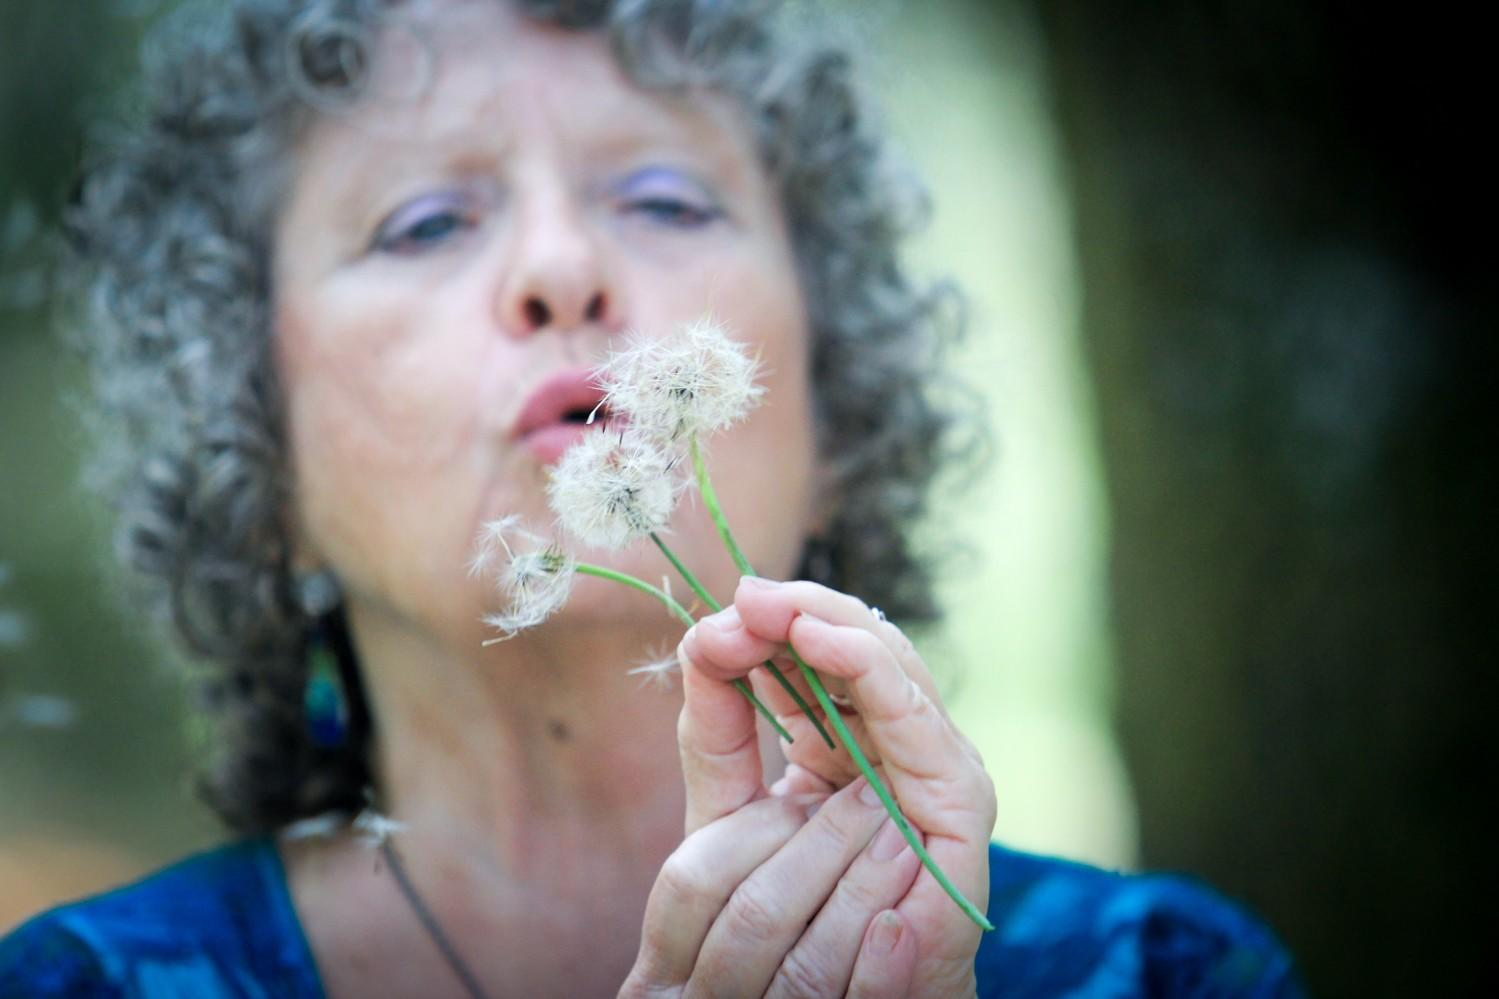 Nurture the seeds of your own emerging light in Spiritual Mentorship with Evalena Rose.